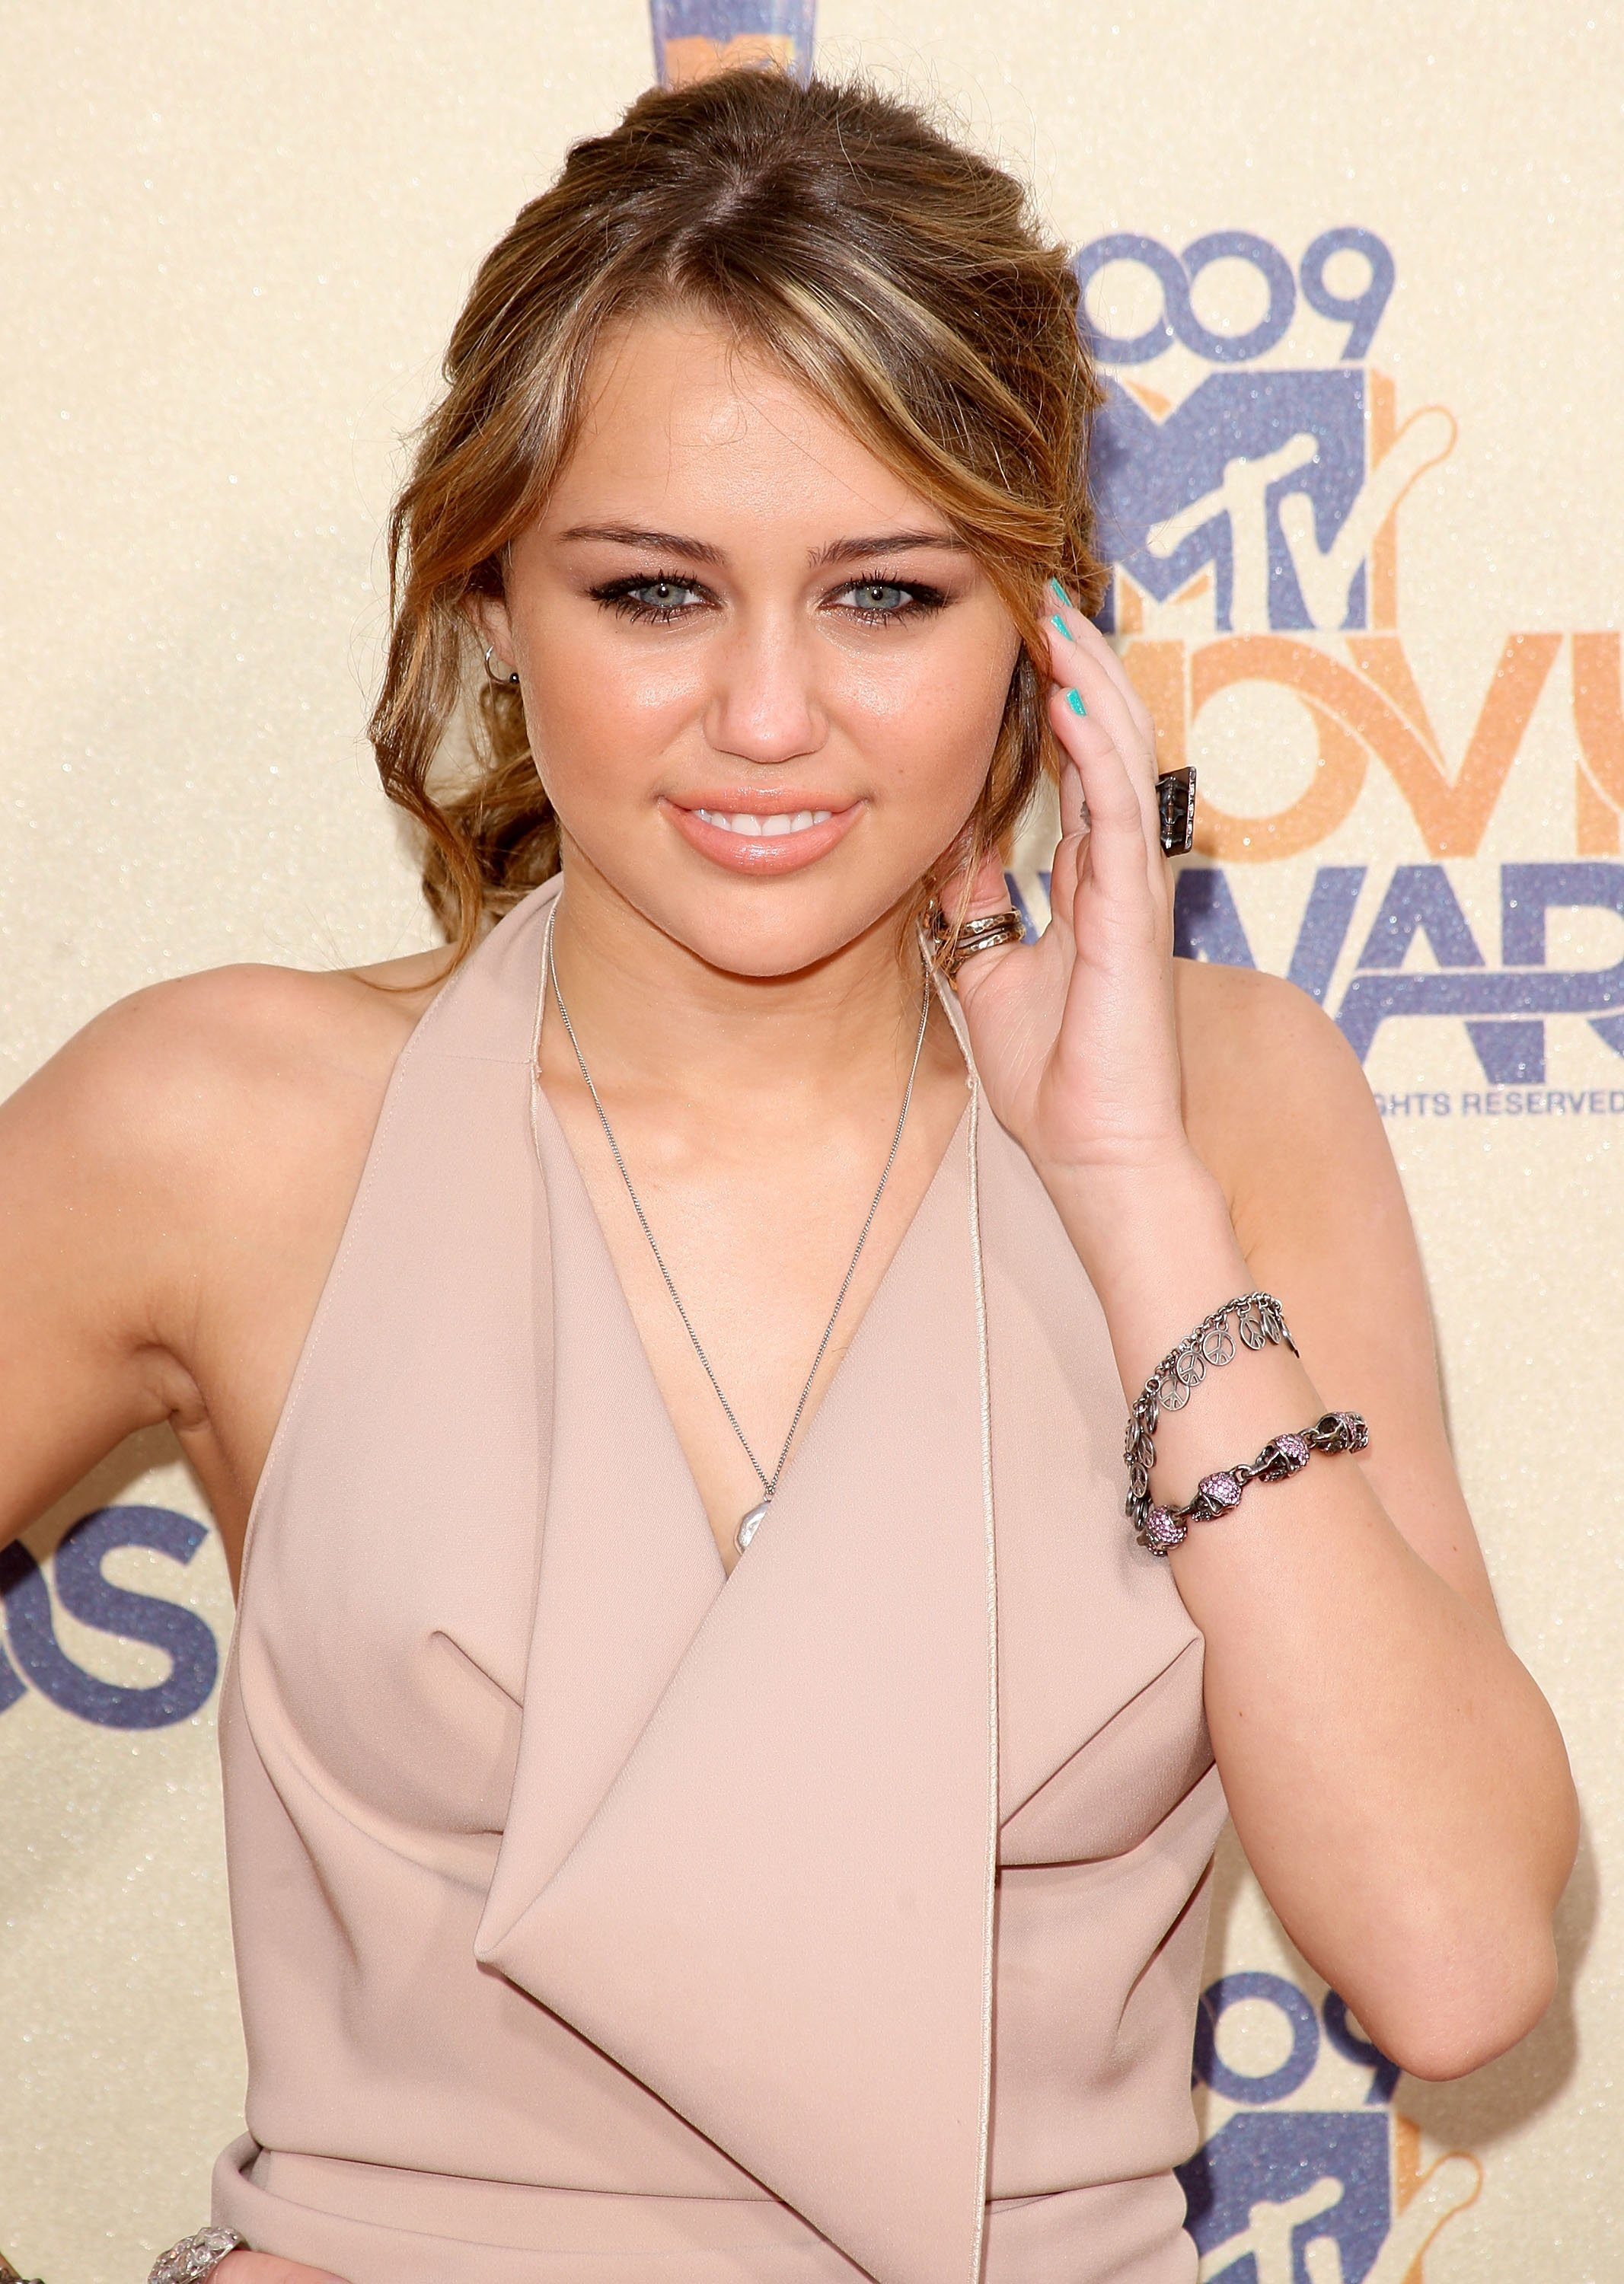 21408_Celebutopia-Miley_Cyrus_arrives_at_the_2009_MTV_Movie_Awards-06_122_1001lo.jpg